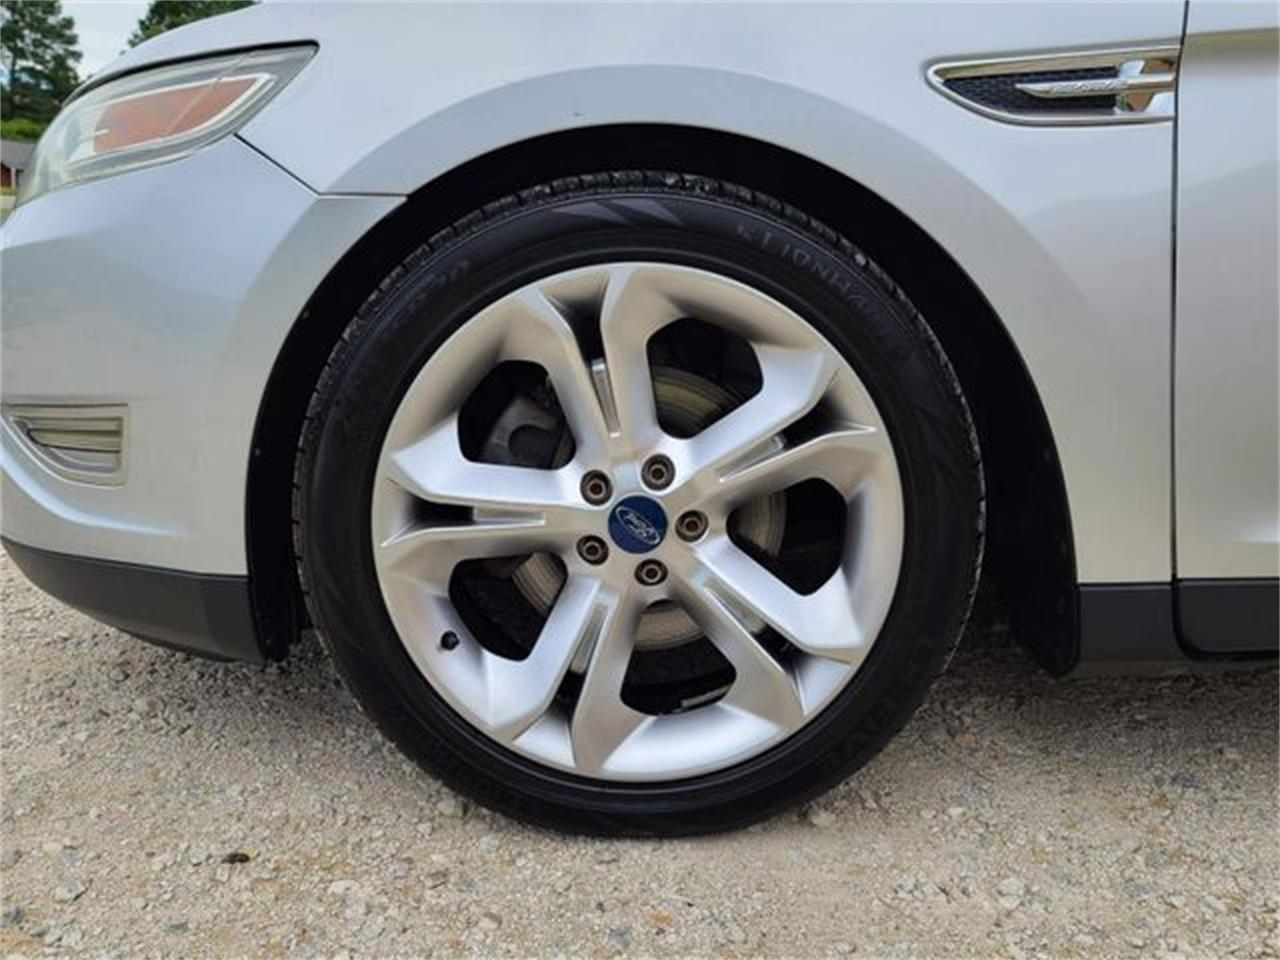 2010 Ford Taurus (CC-1379836) for sale in Hope Mills, North Carolina